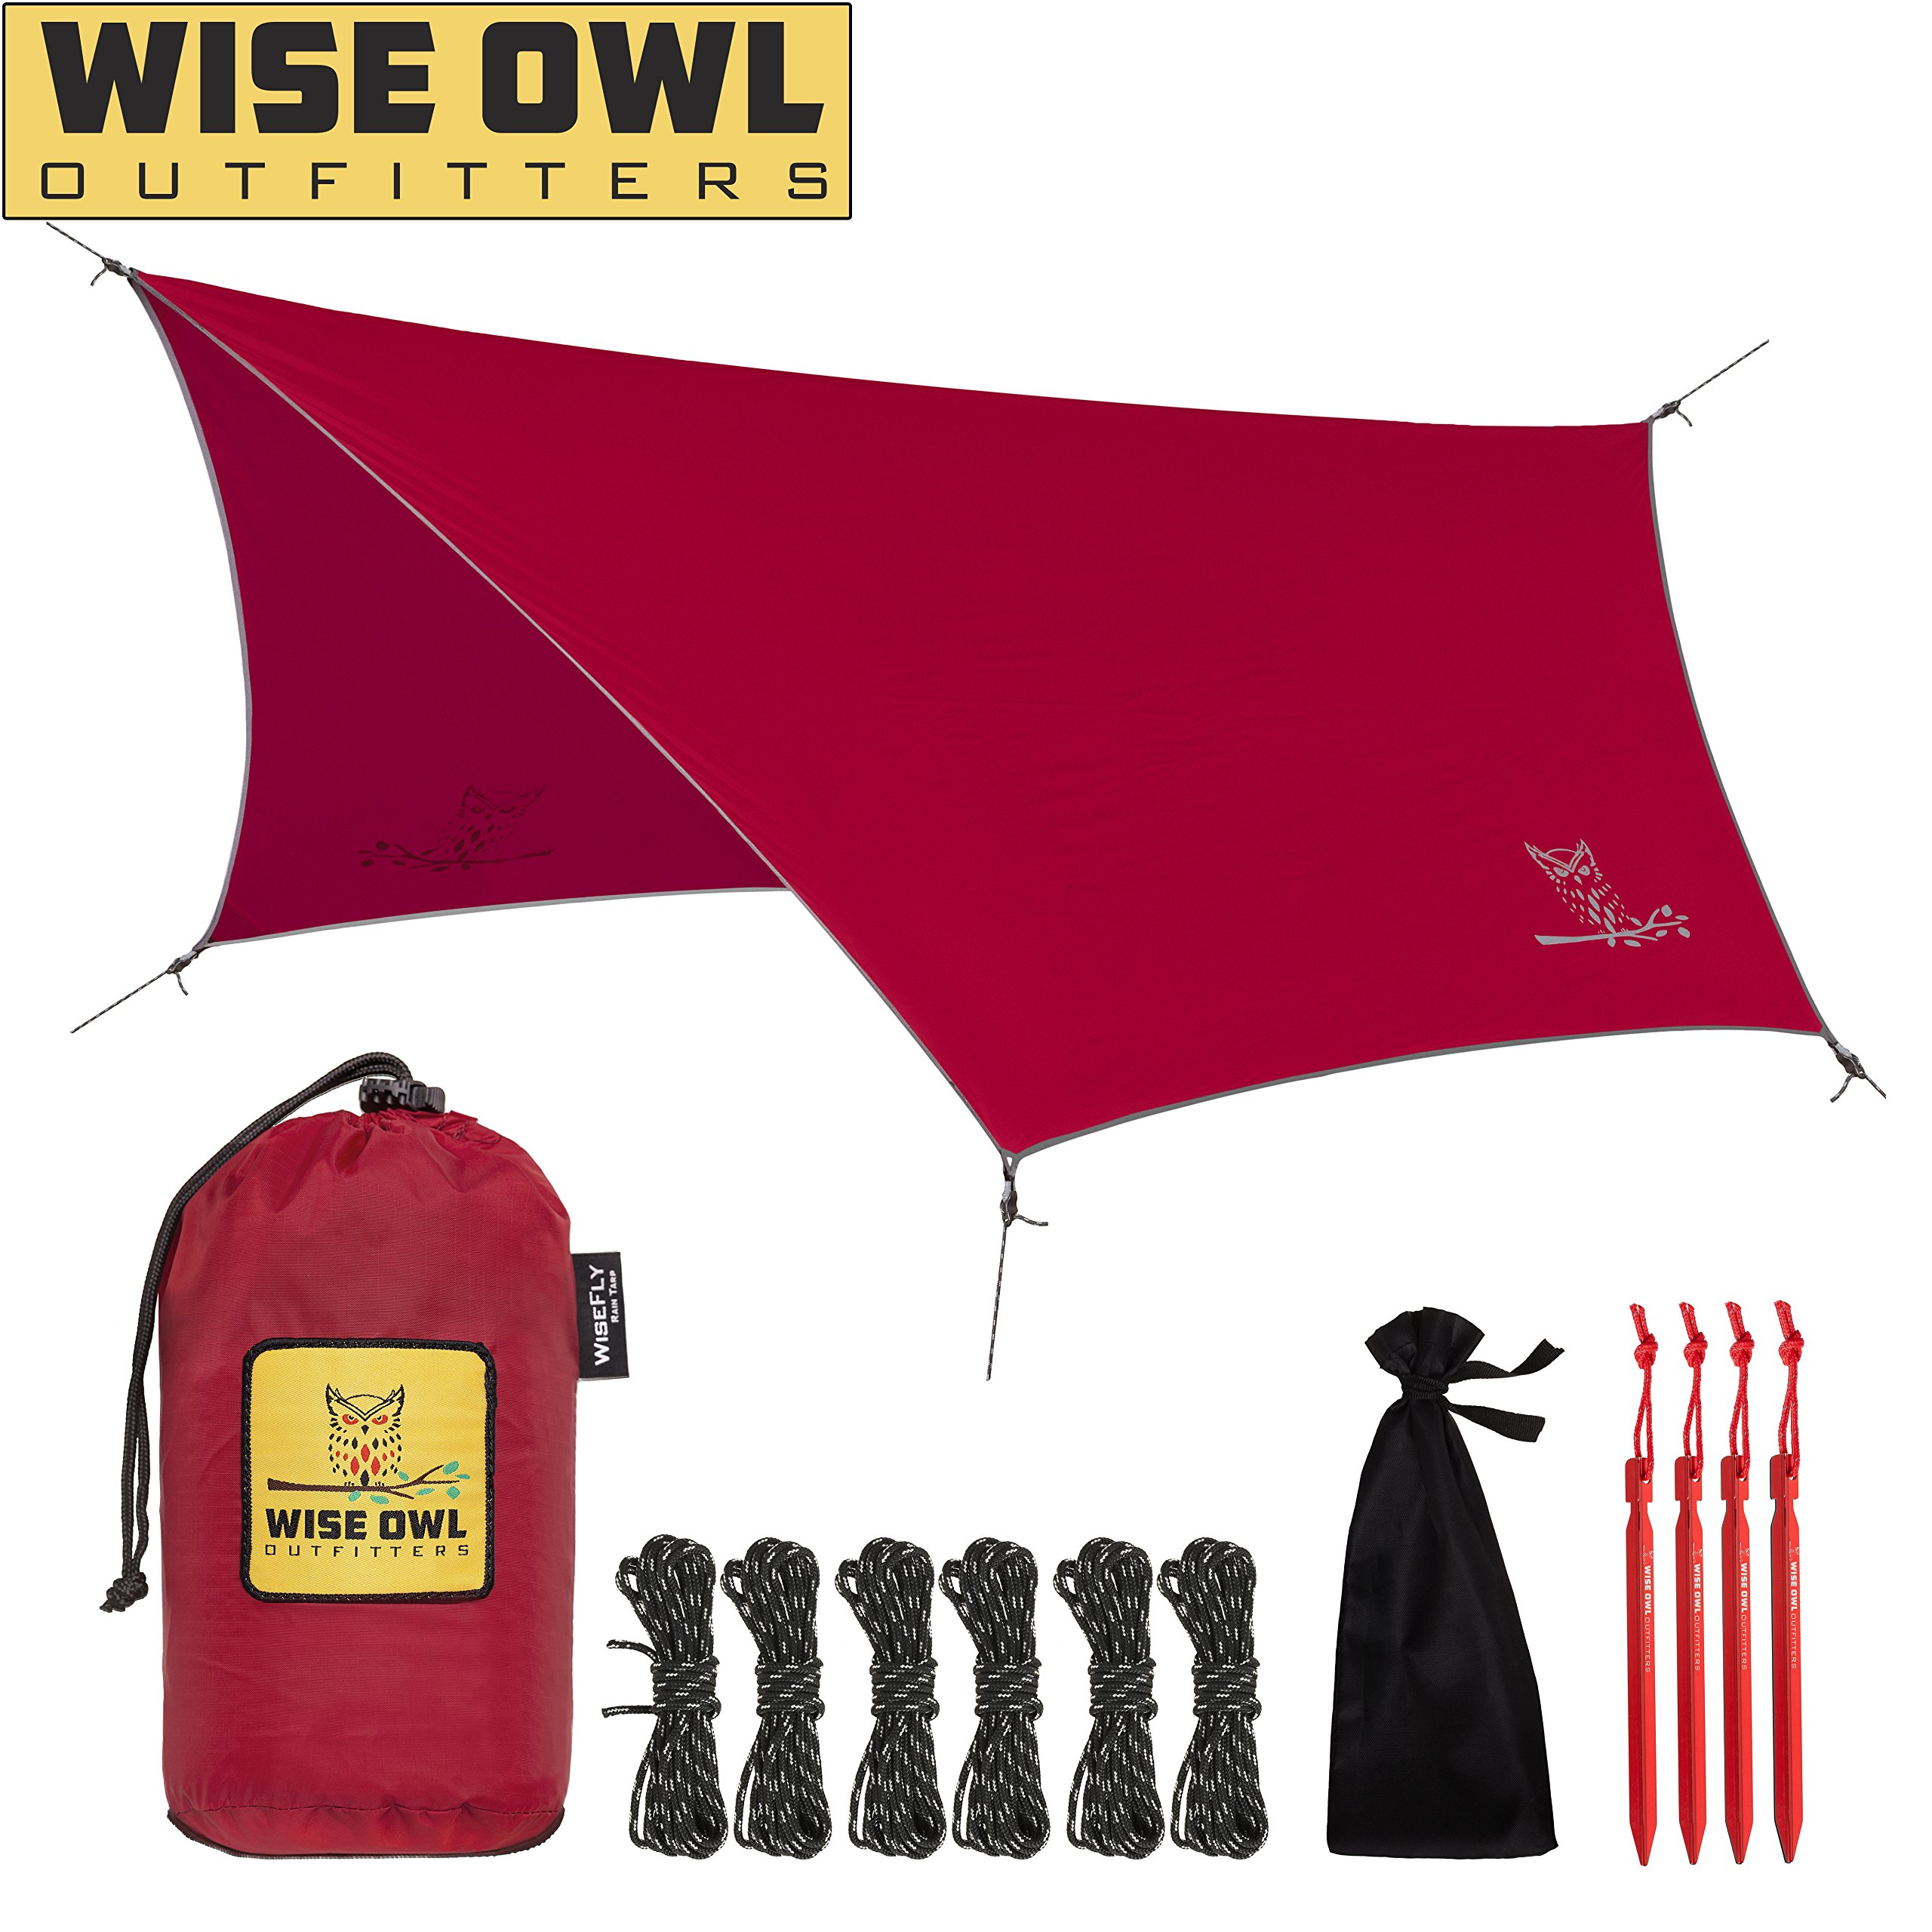 Wise Owl Outfitters Rain Fly Tarp - The WiseFly Premium 11 x 9 ft Waterproof Camping Shelter Canopy - Lightweight Easy Setup for Hammock or Tent Camp Gear - Crimson Red by Wise Owl Outfitters